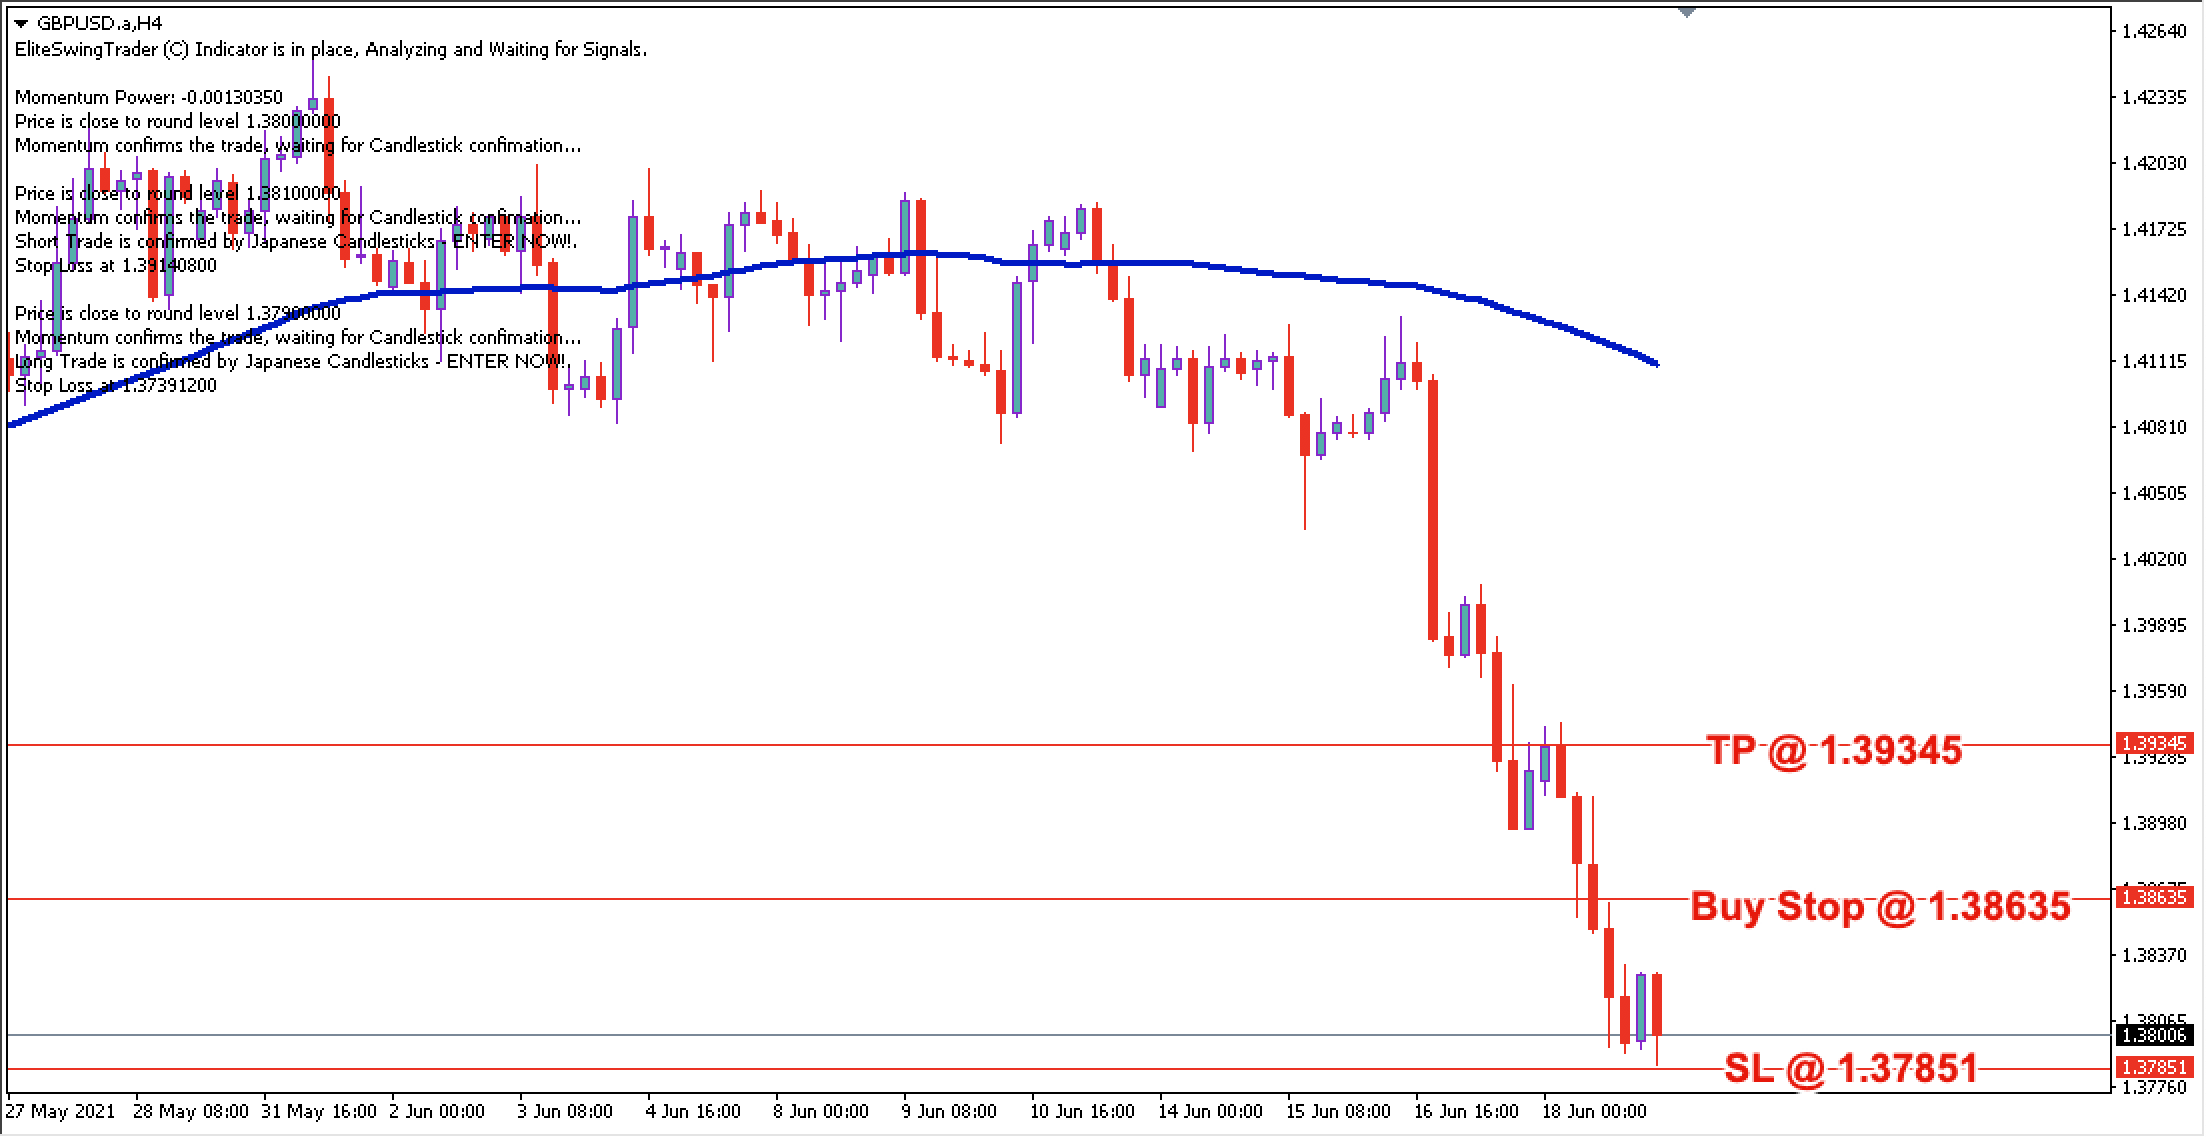 GBP/USD Daily Price Forecast – 21st June 2021